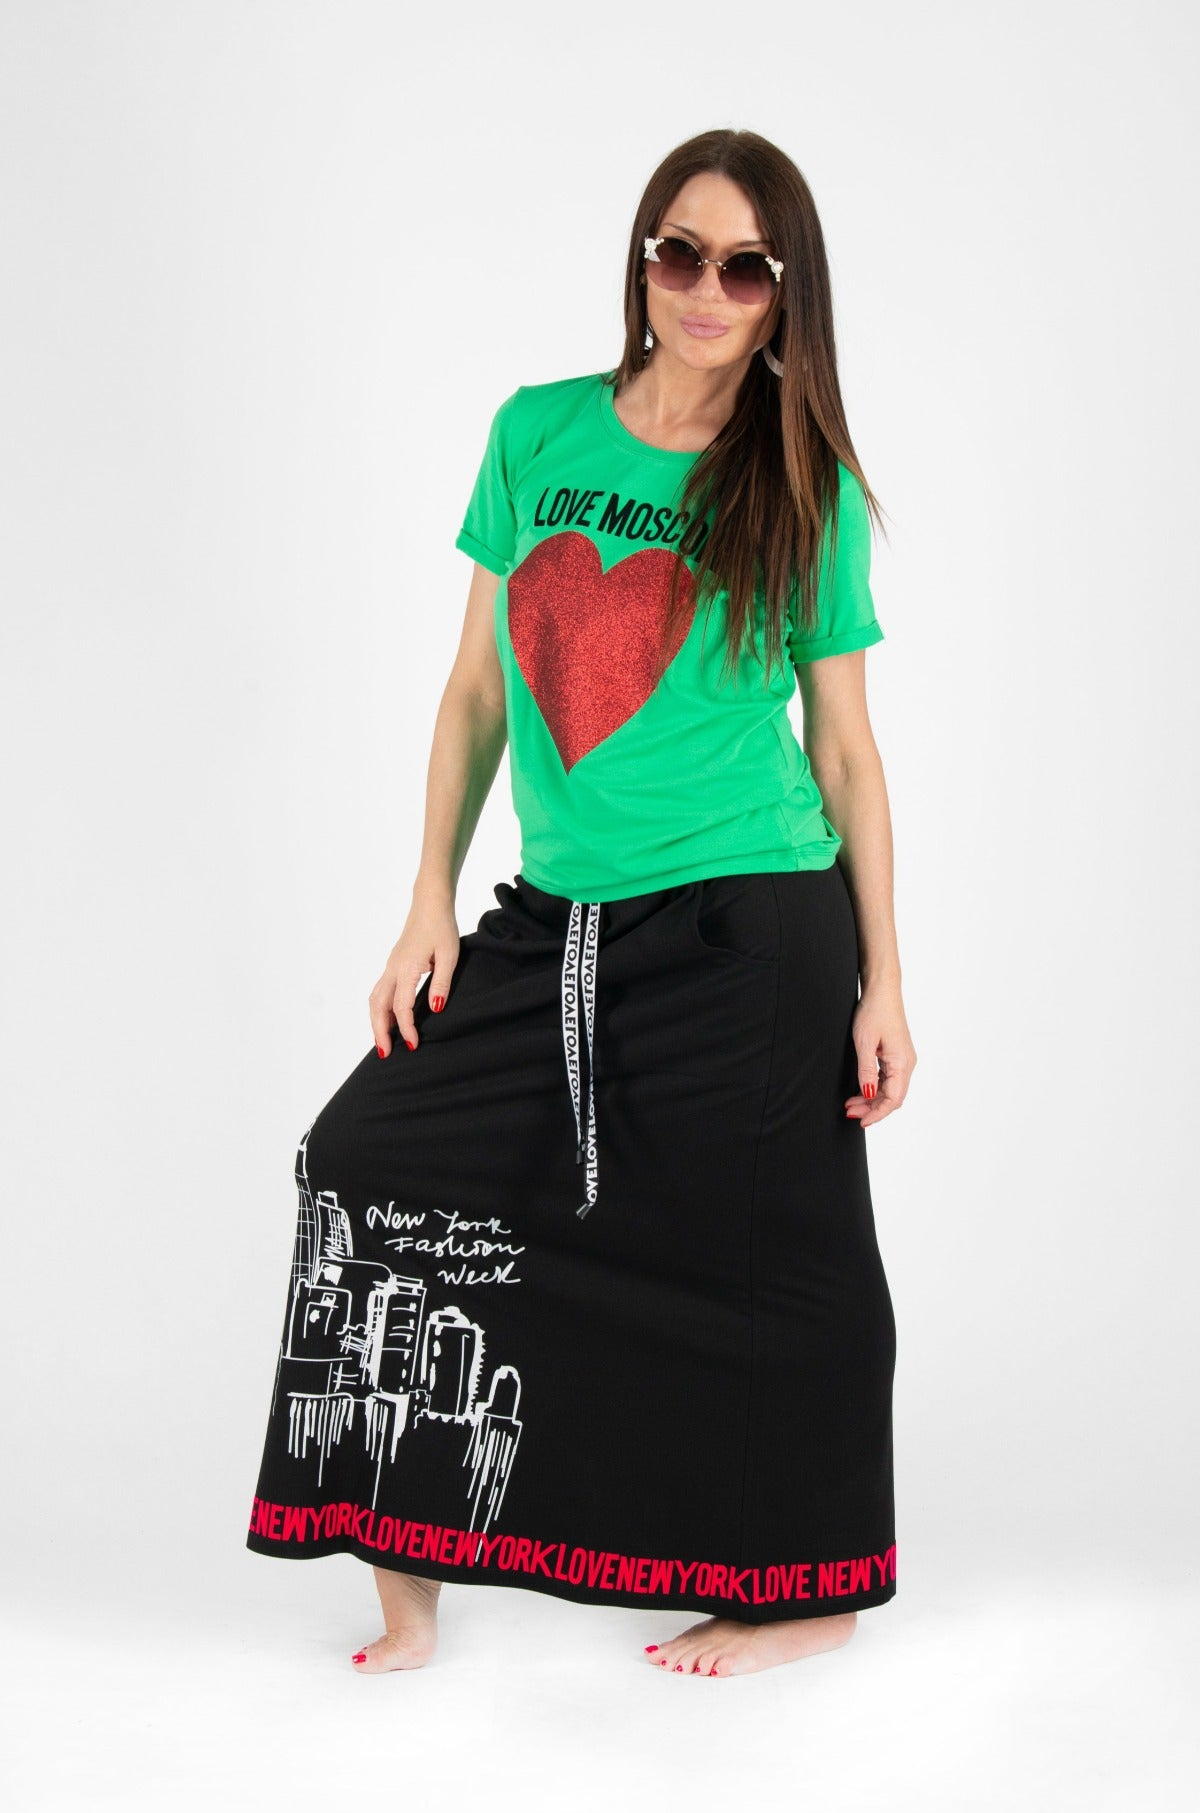 green tee black skirt outfit